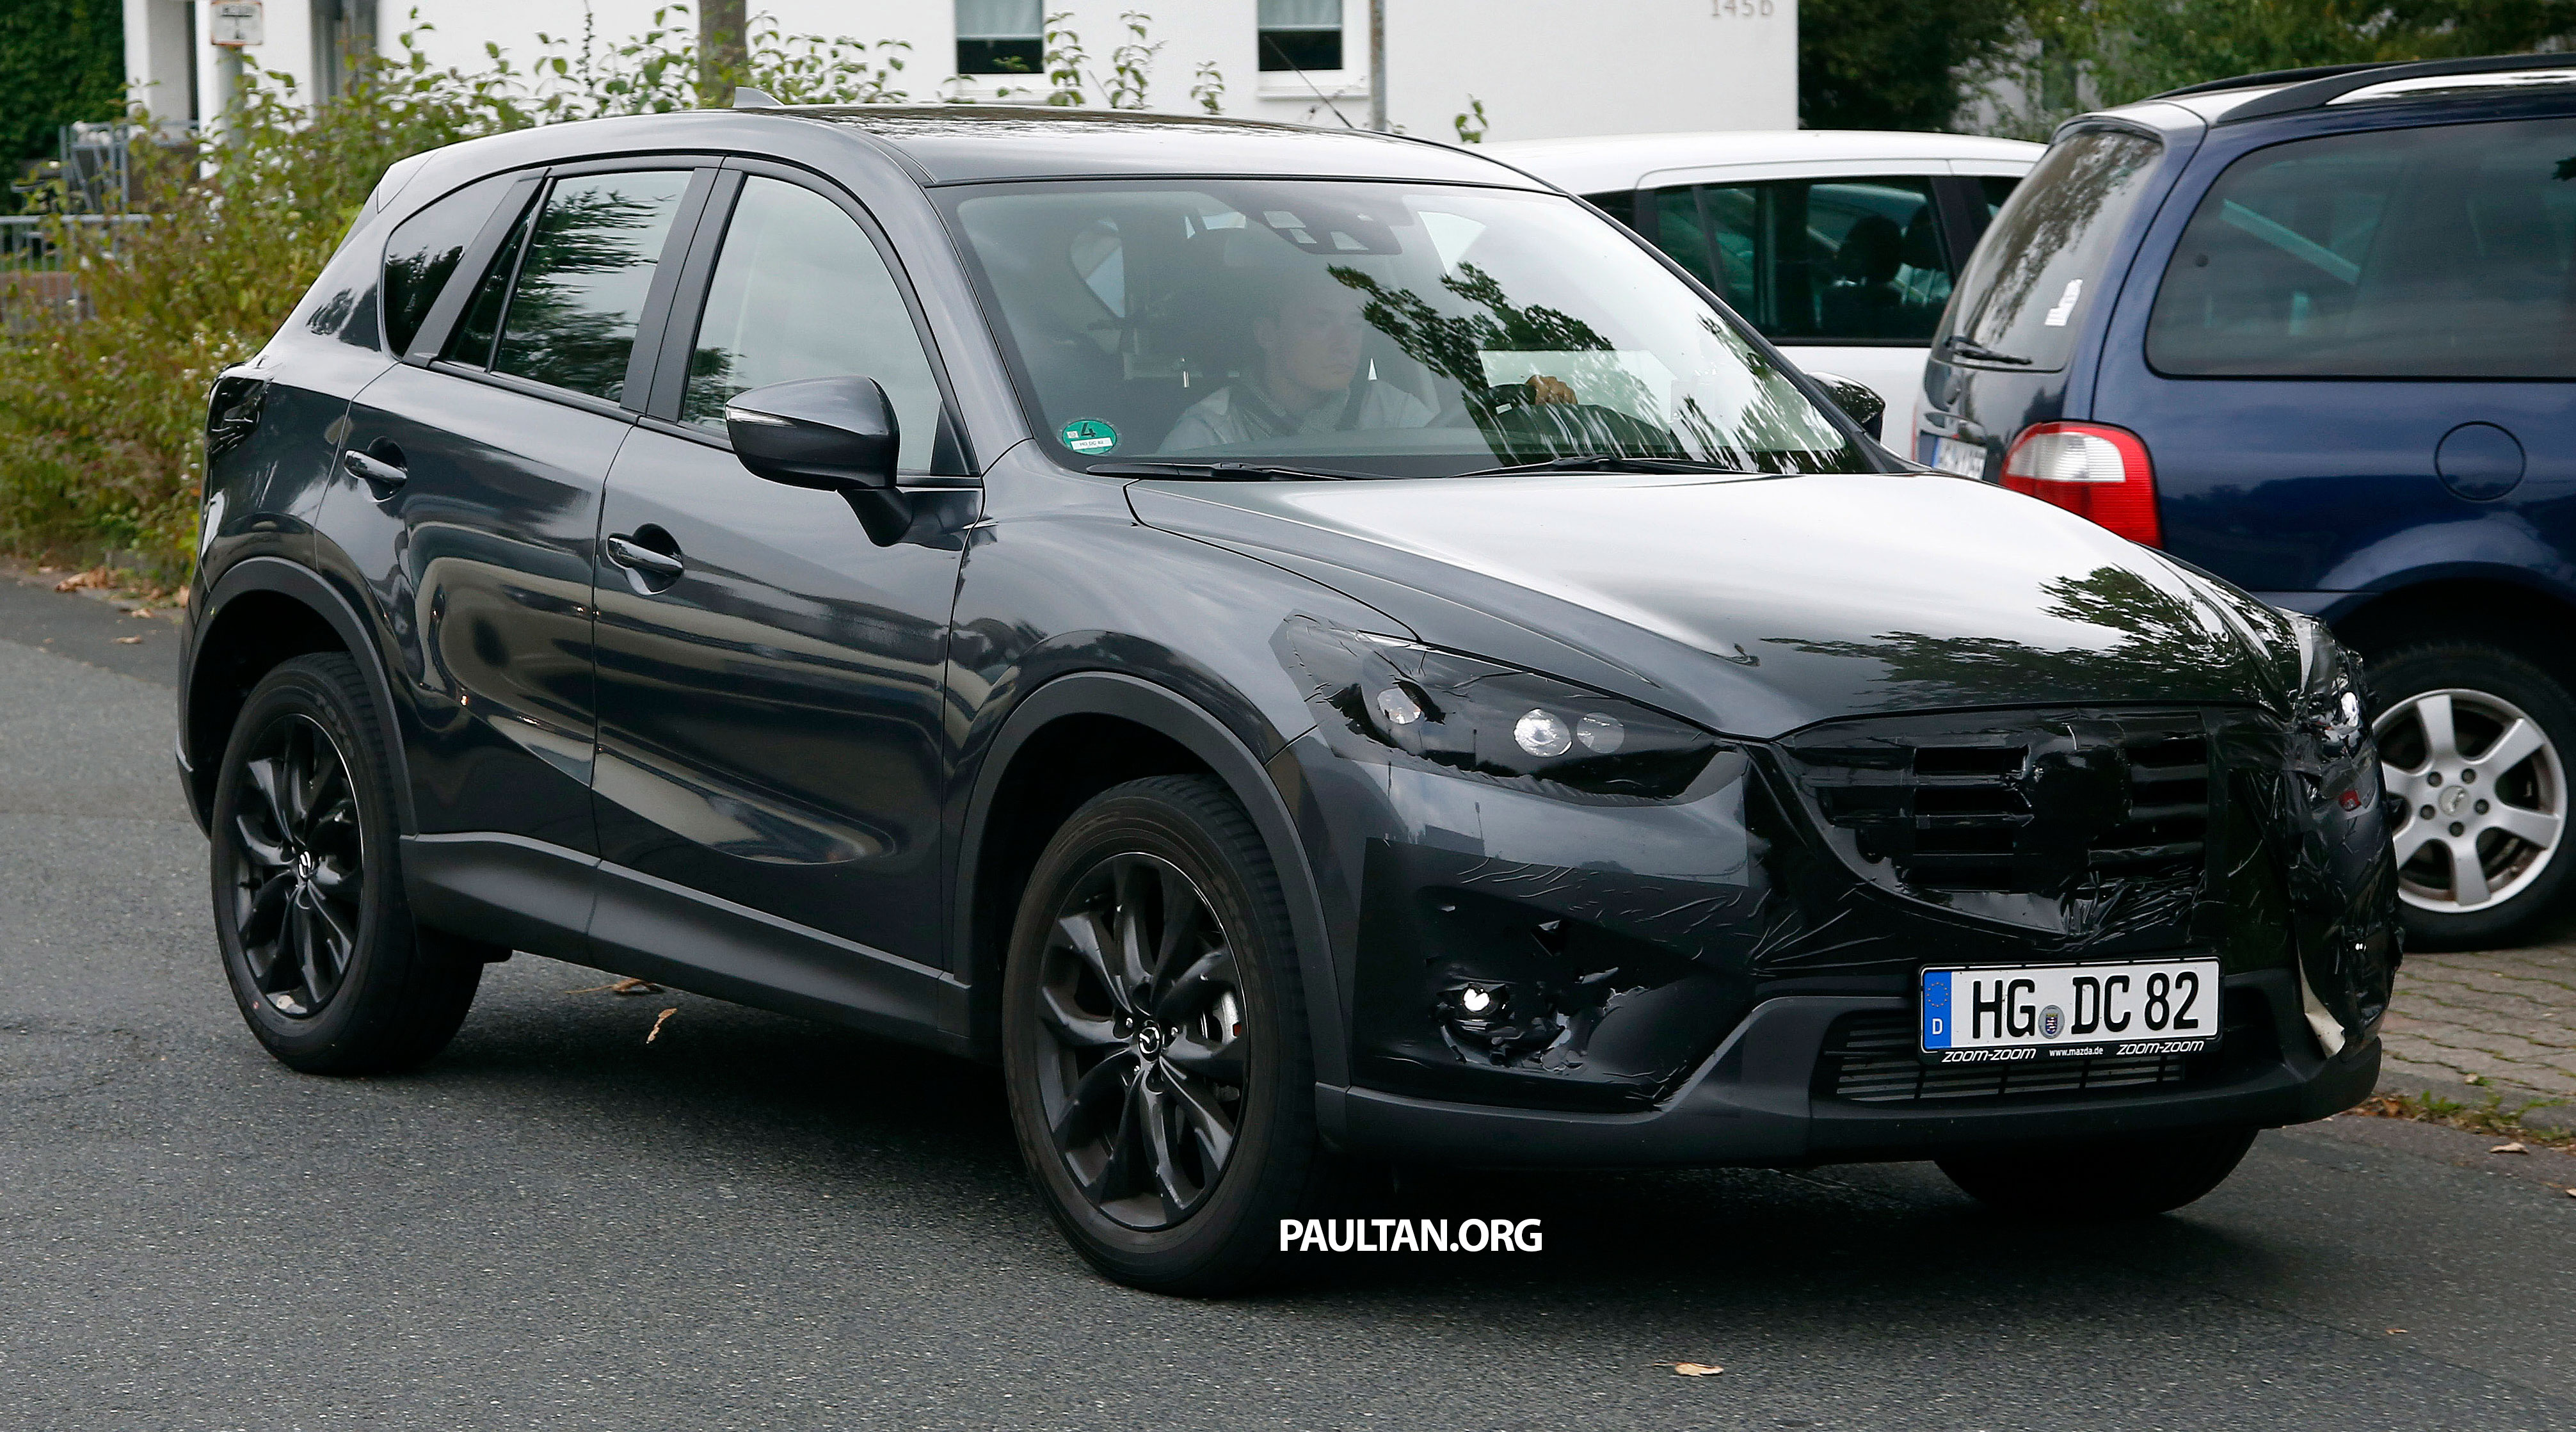 SPYSHOTS: Mazda CX-5 facelift – new grille and lamps Image ...